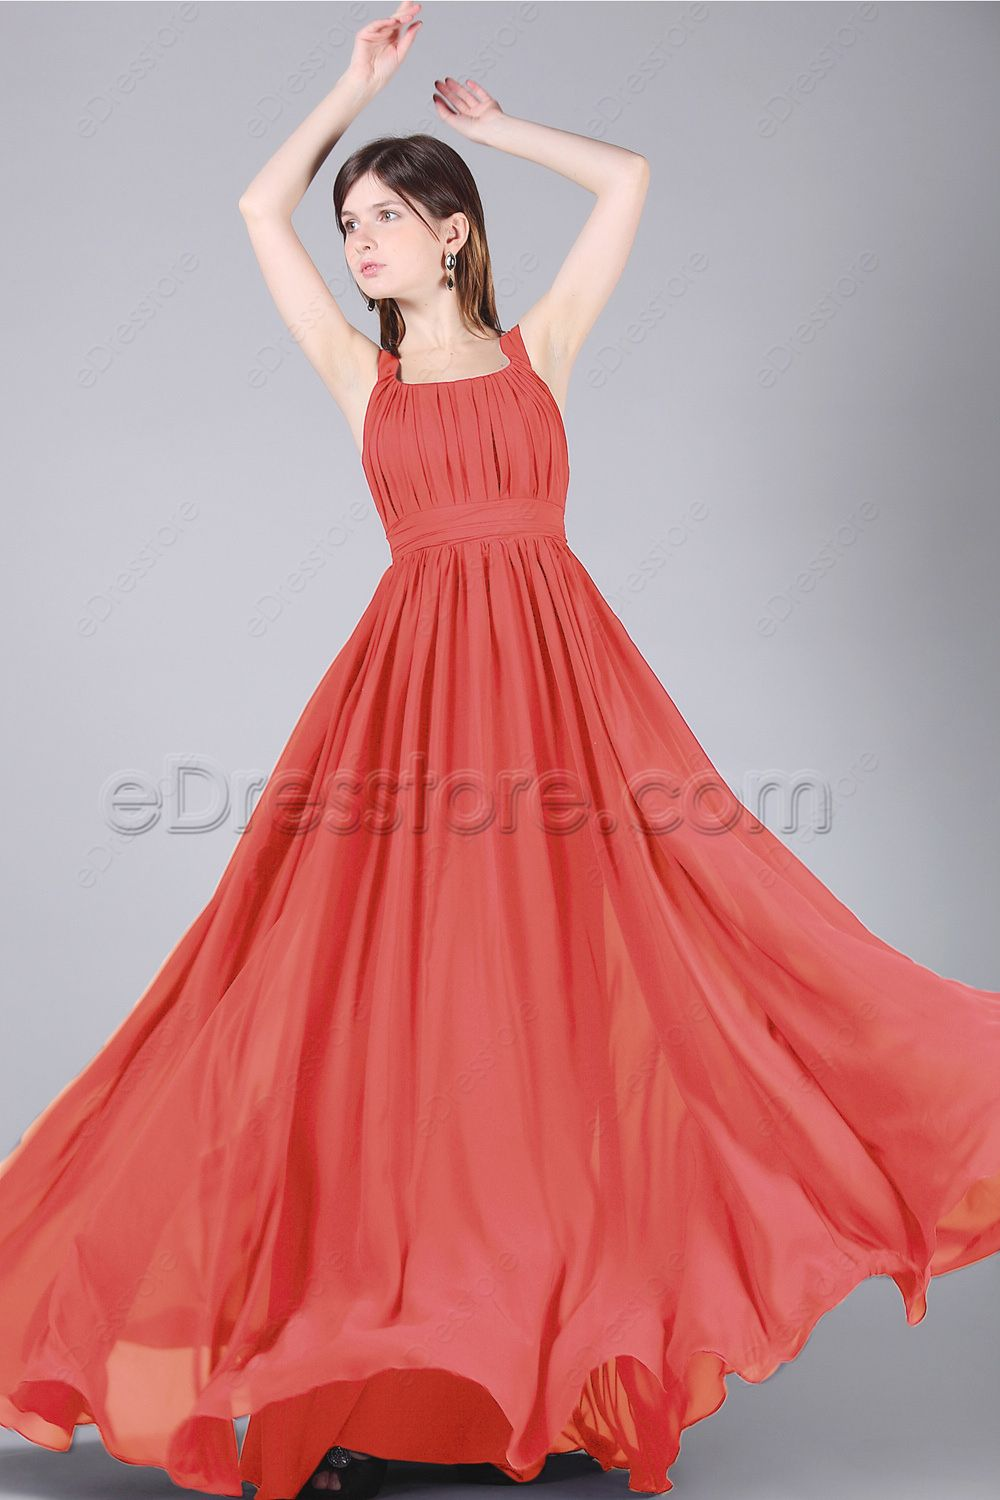 Simple Elegant Coral Long Bridesmaid Dresses Plus Size Long